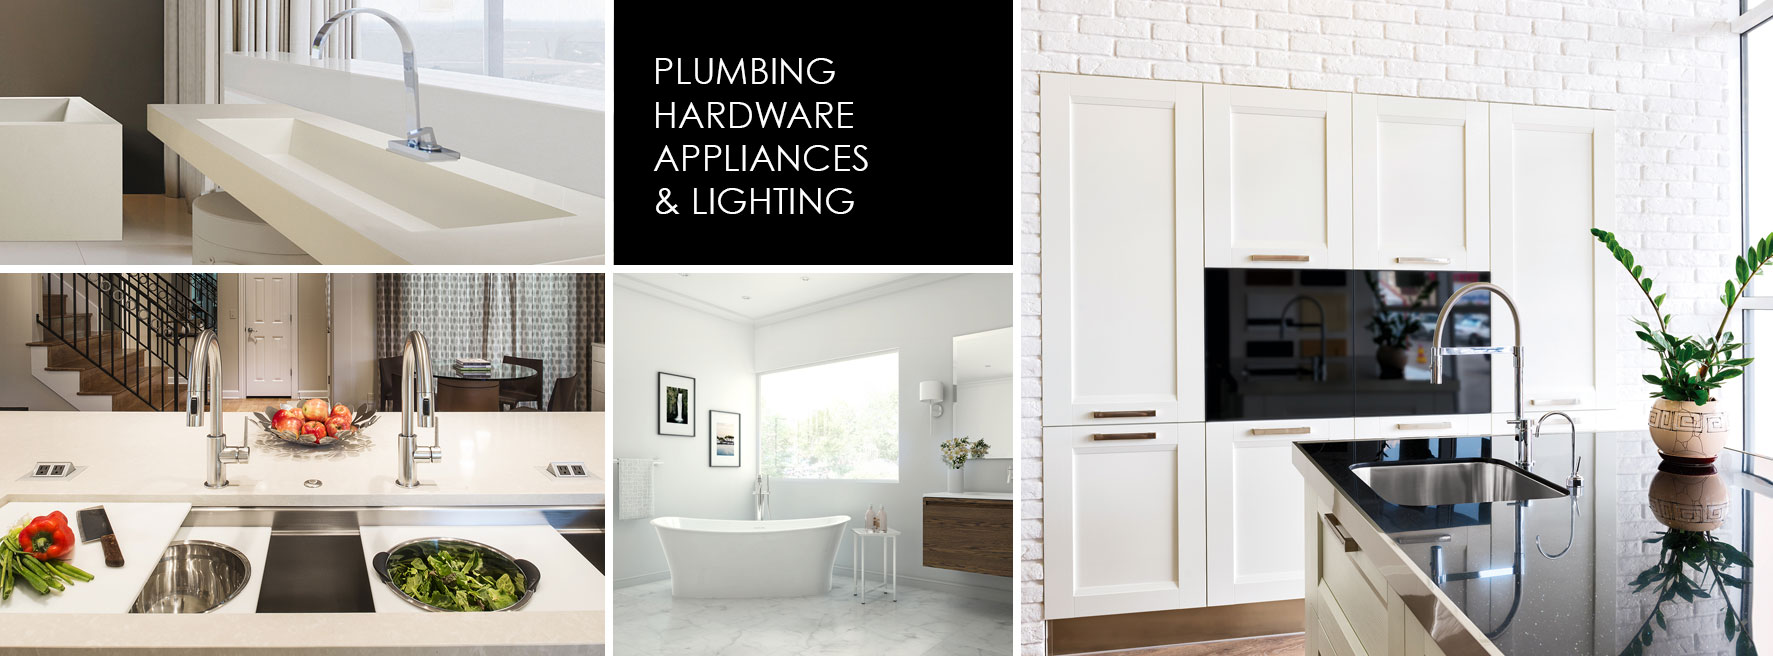 premier bath and kitchen featuring decorative plumbing